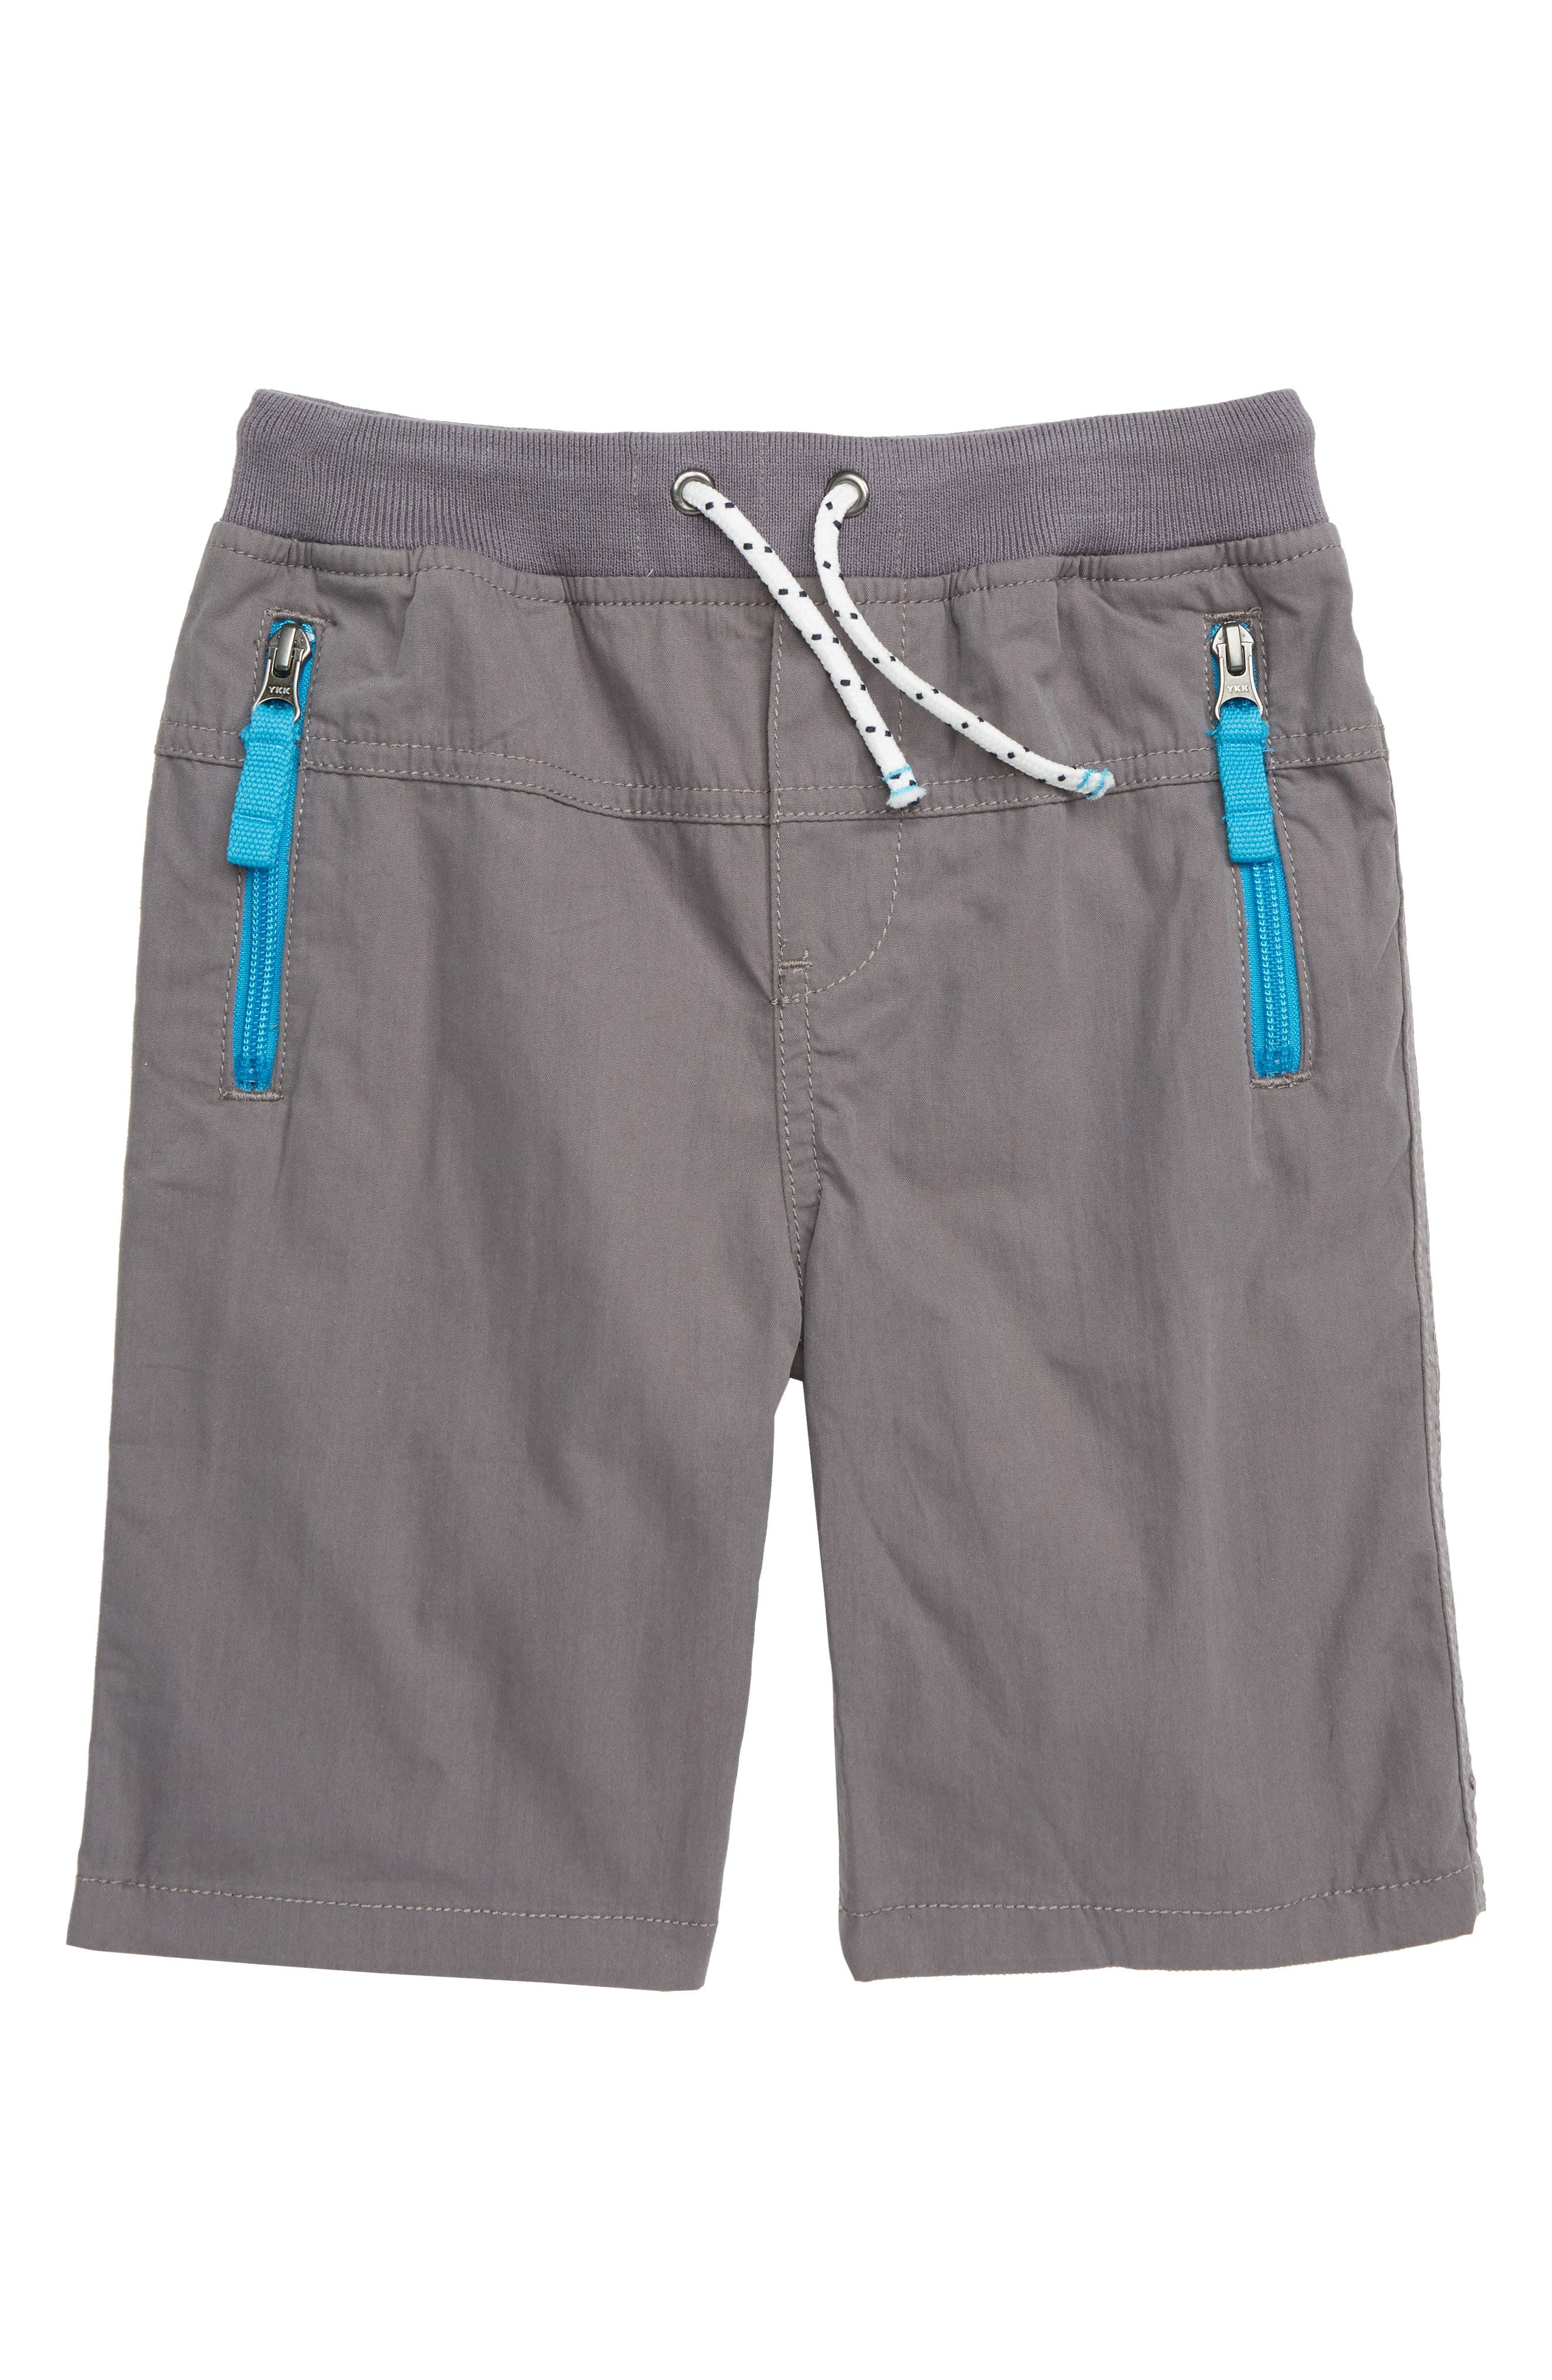 Adventure Shorts,                             Main thumbnail 1, color,                             PEWTER GREY